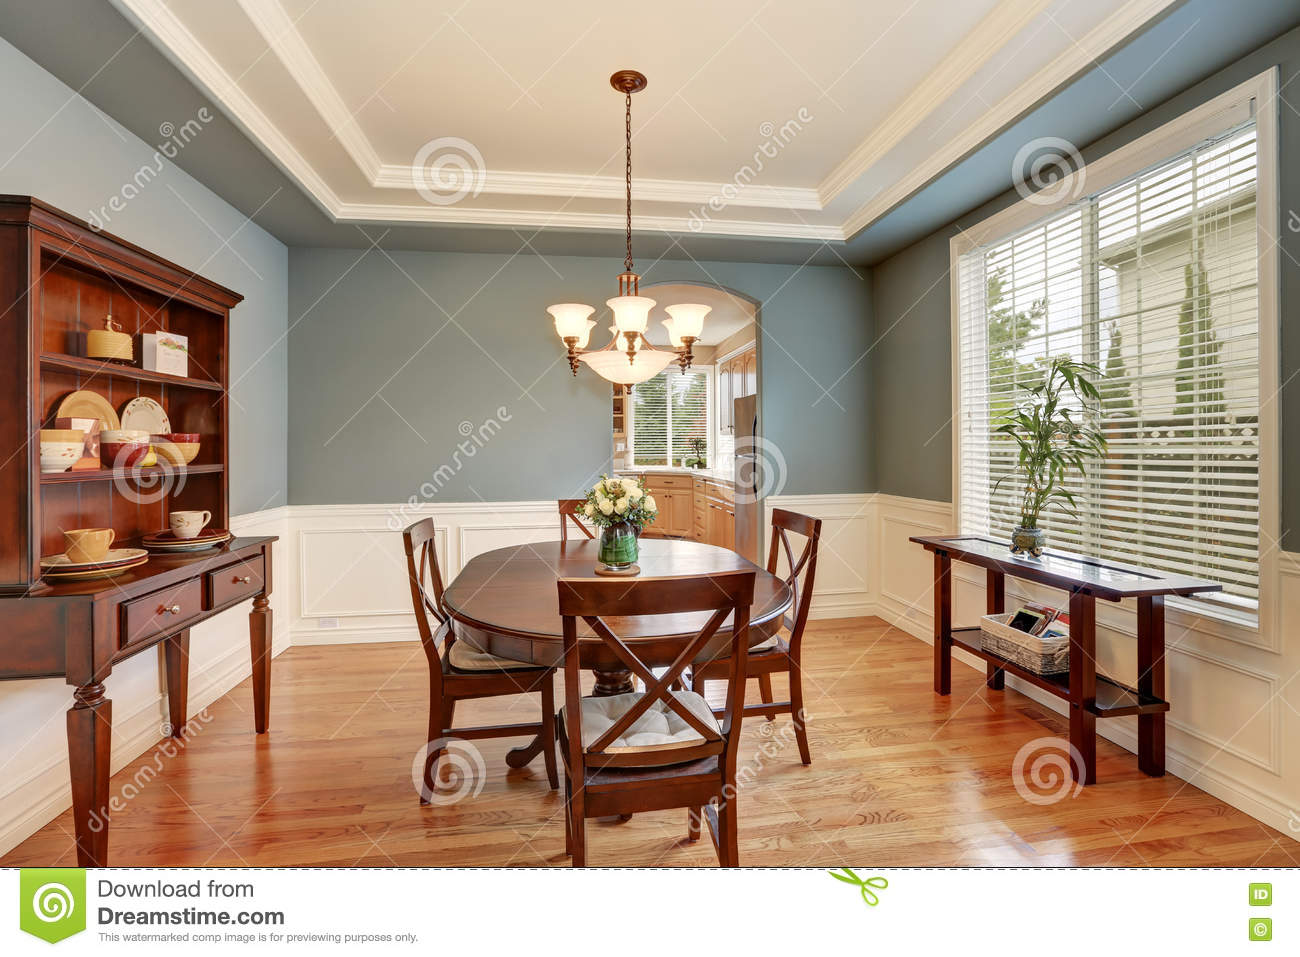 american classic dining room interior with green walls stock american dining interior northwest room